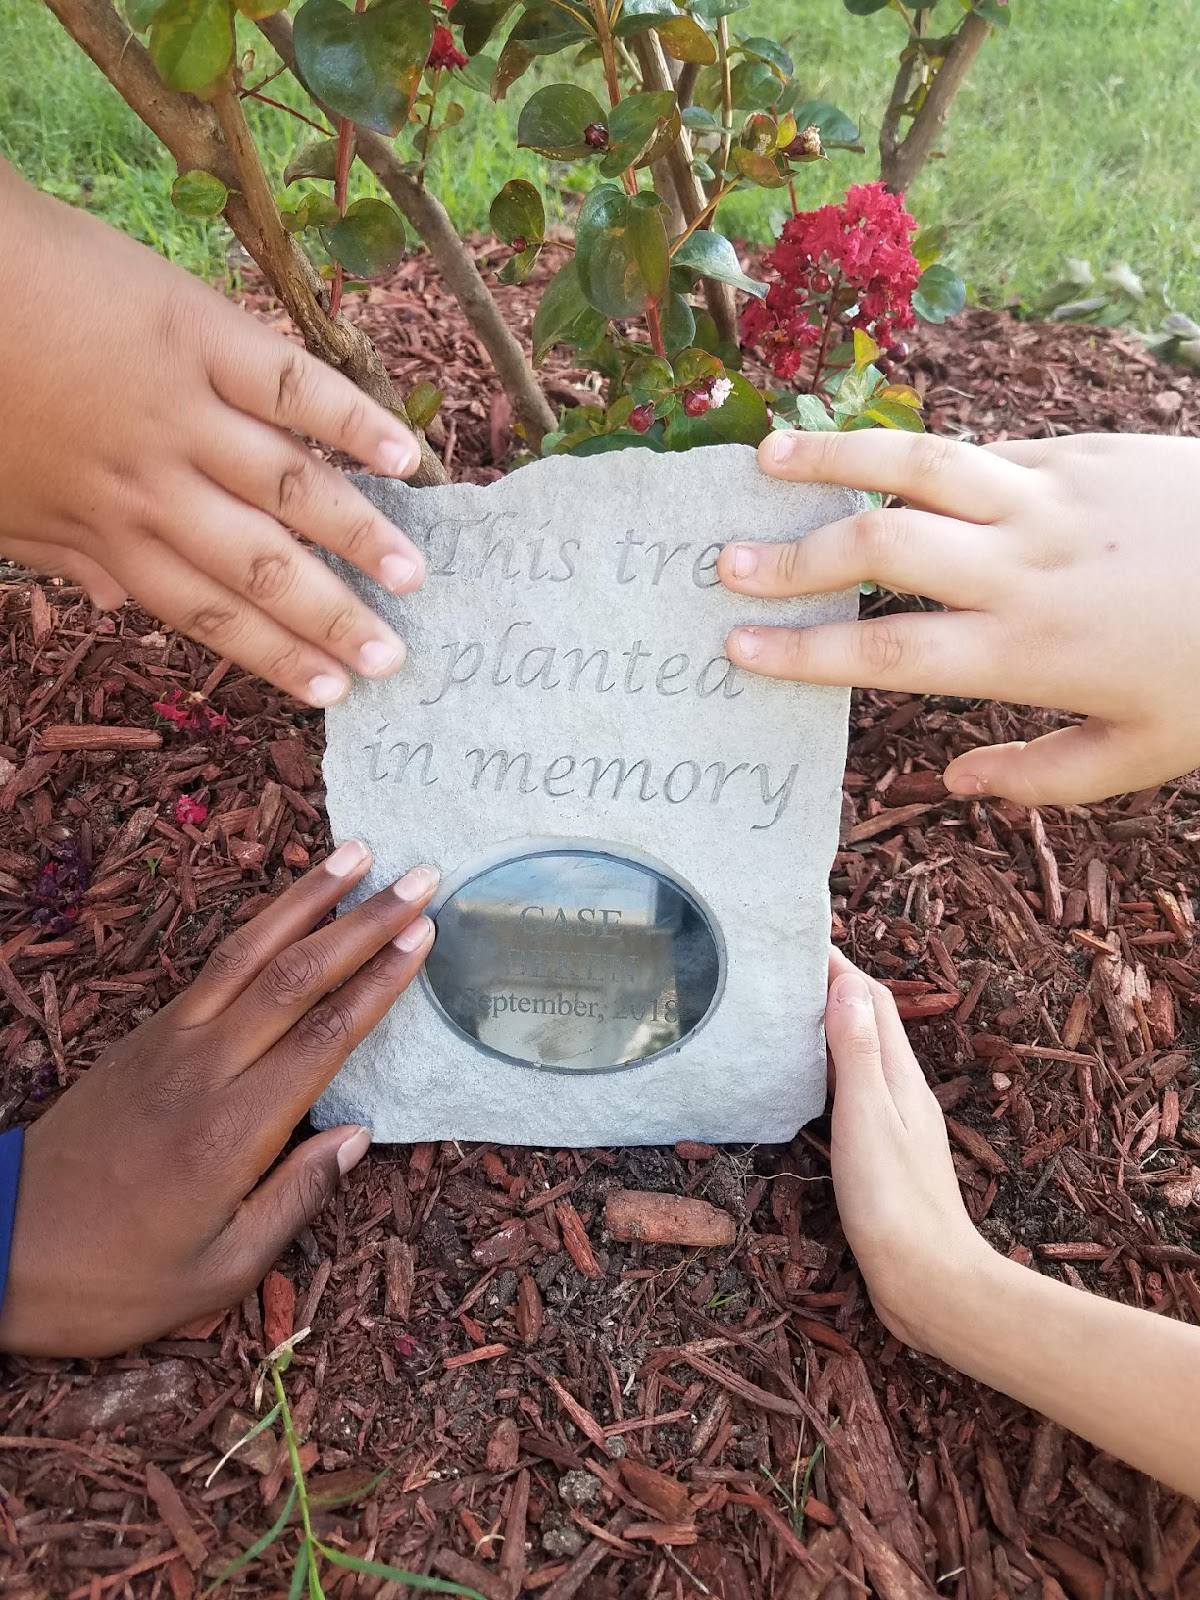 The hands of four students touch the stone plaque.